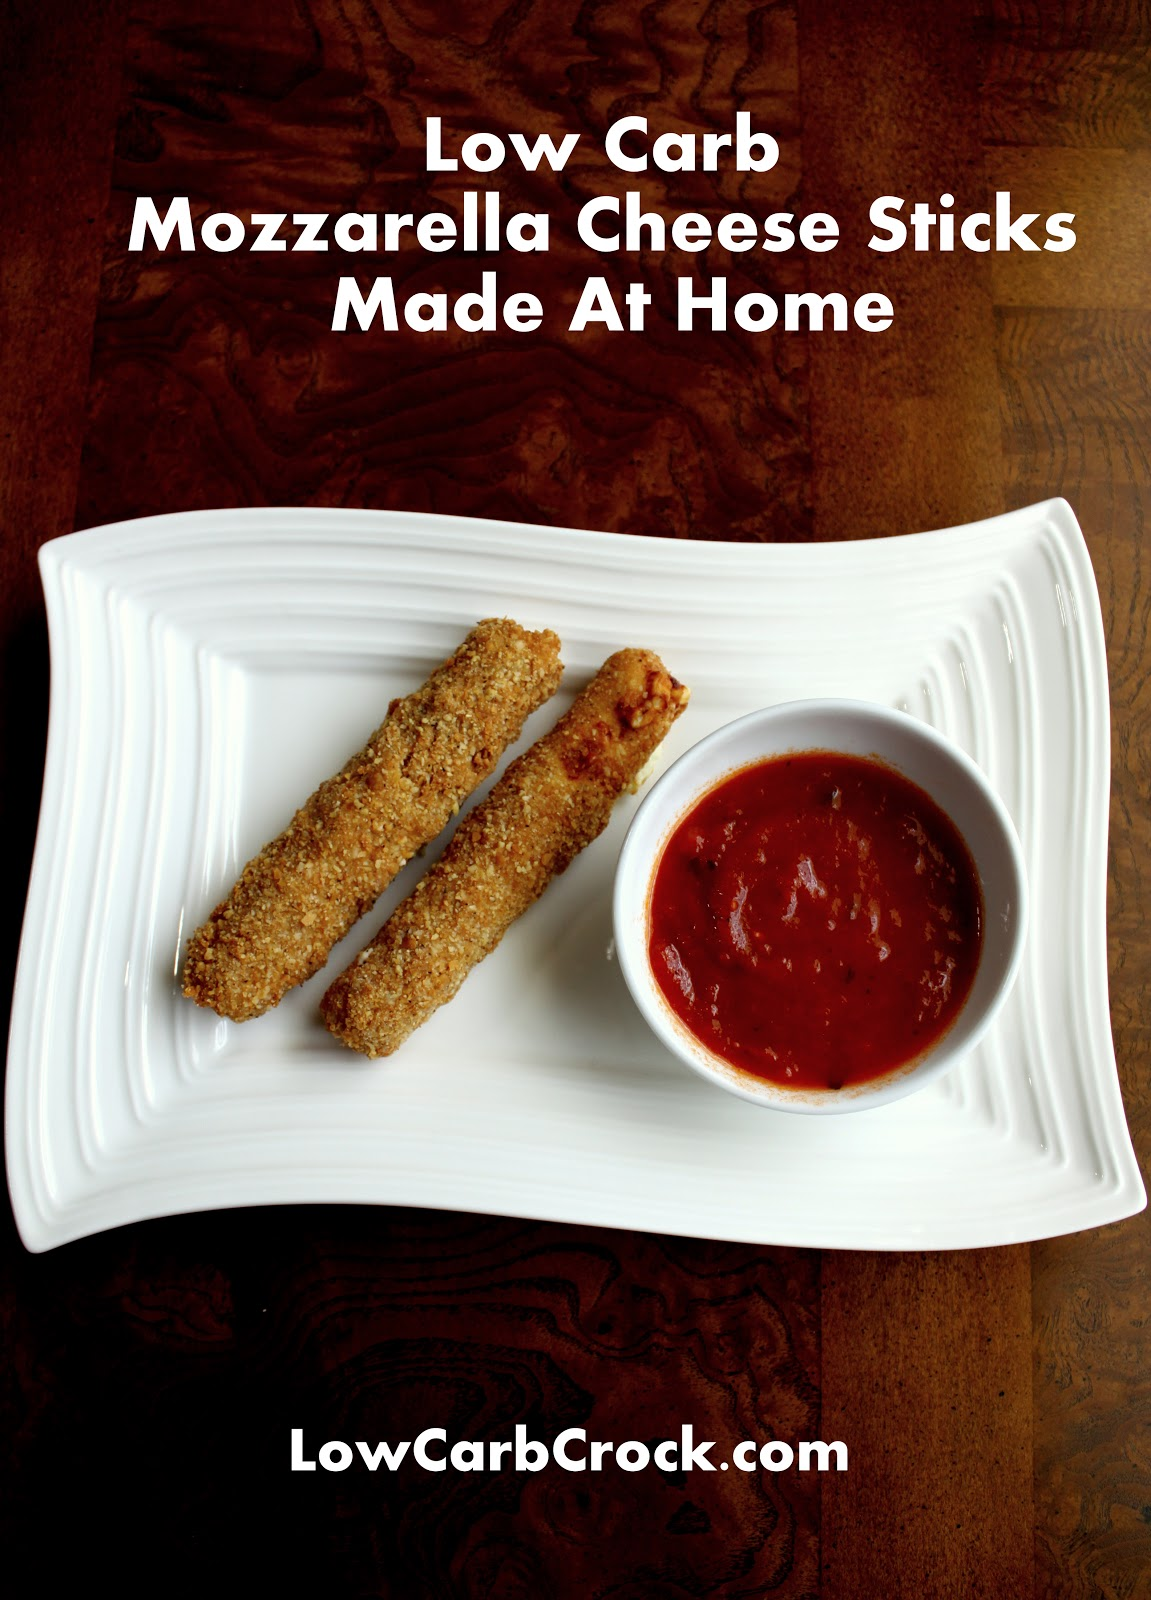 How To Make Low Carb Fried Mozzarella Cheese Sticks At Home